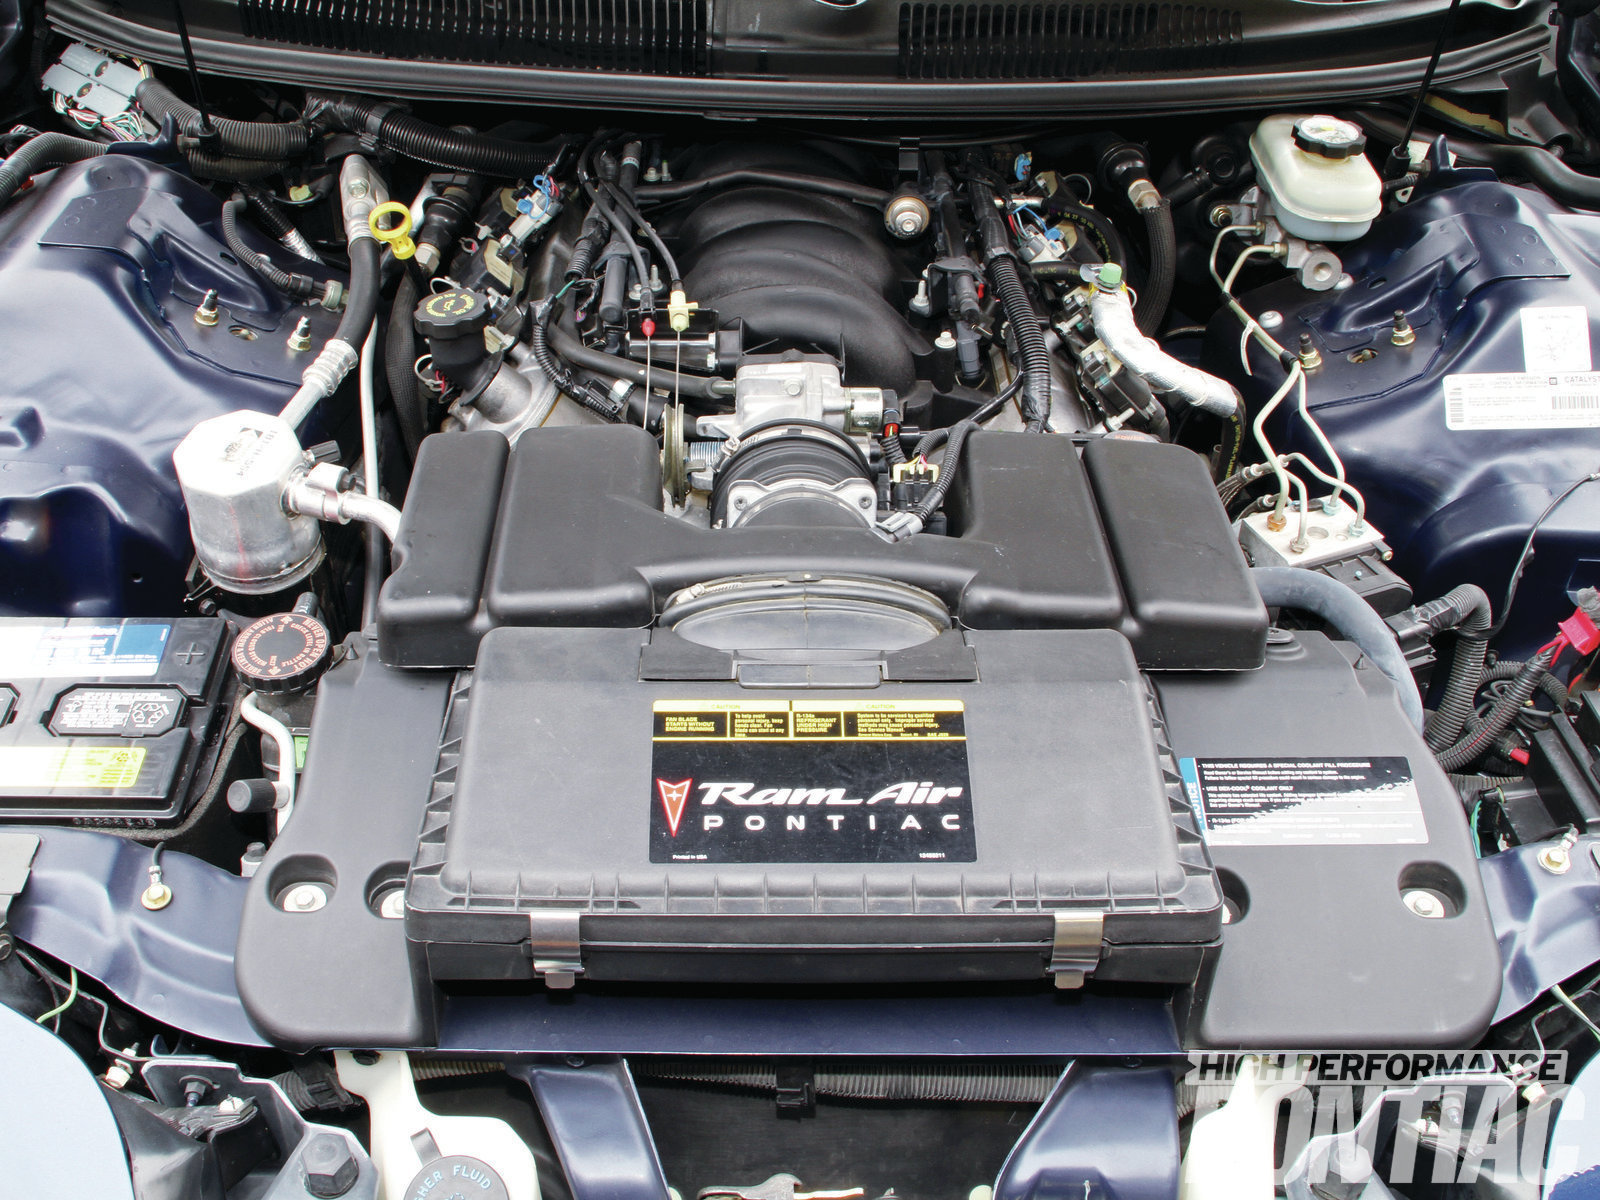 The all-aluminum LS1 was the standard Firebird V-8 beginning in '98. Initially rated at 305 hp, a new camshaft and a revised intake manifold boosted that to 310 for 2001. The WS6 option added 15 hp taking it to 325.